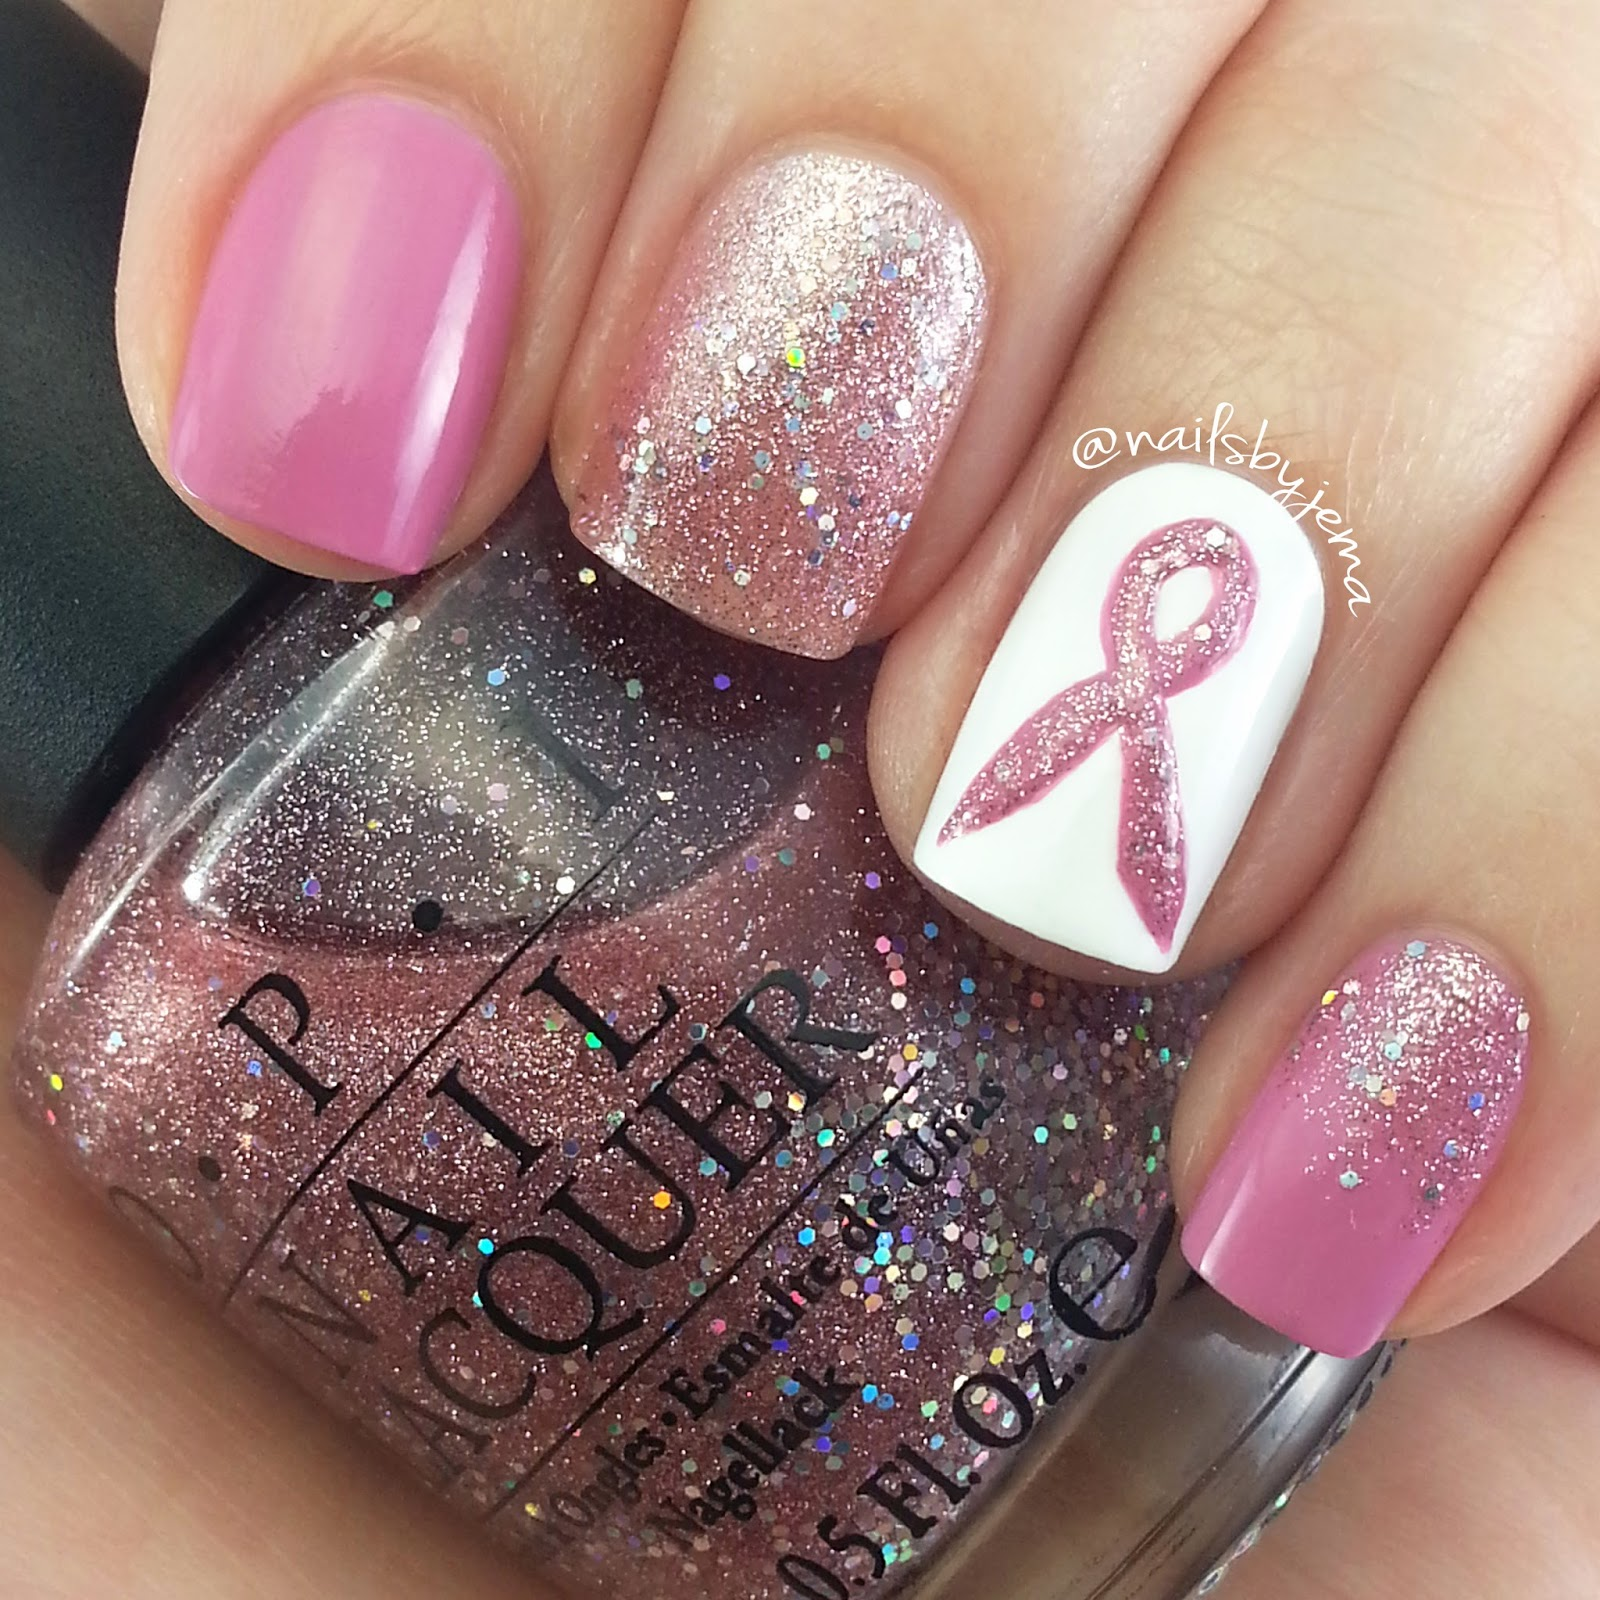 N A I L S B Y J E M A: Going PINK For October and Breast Cancer ...